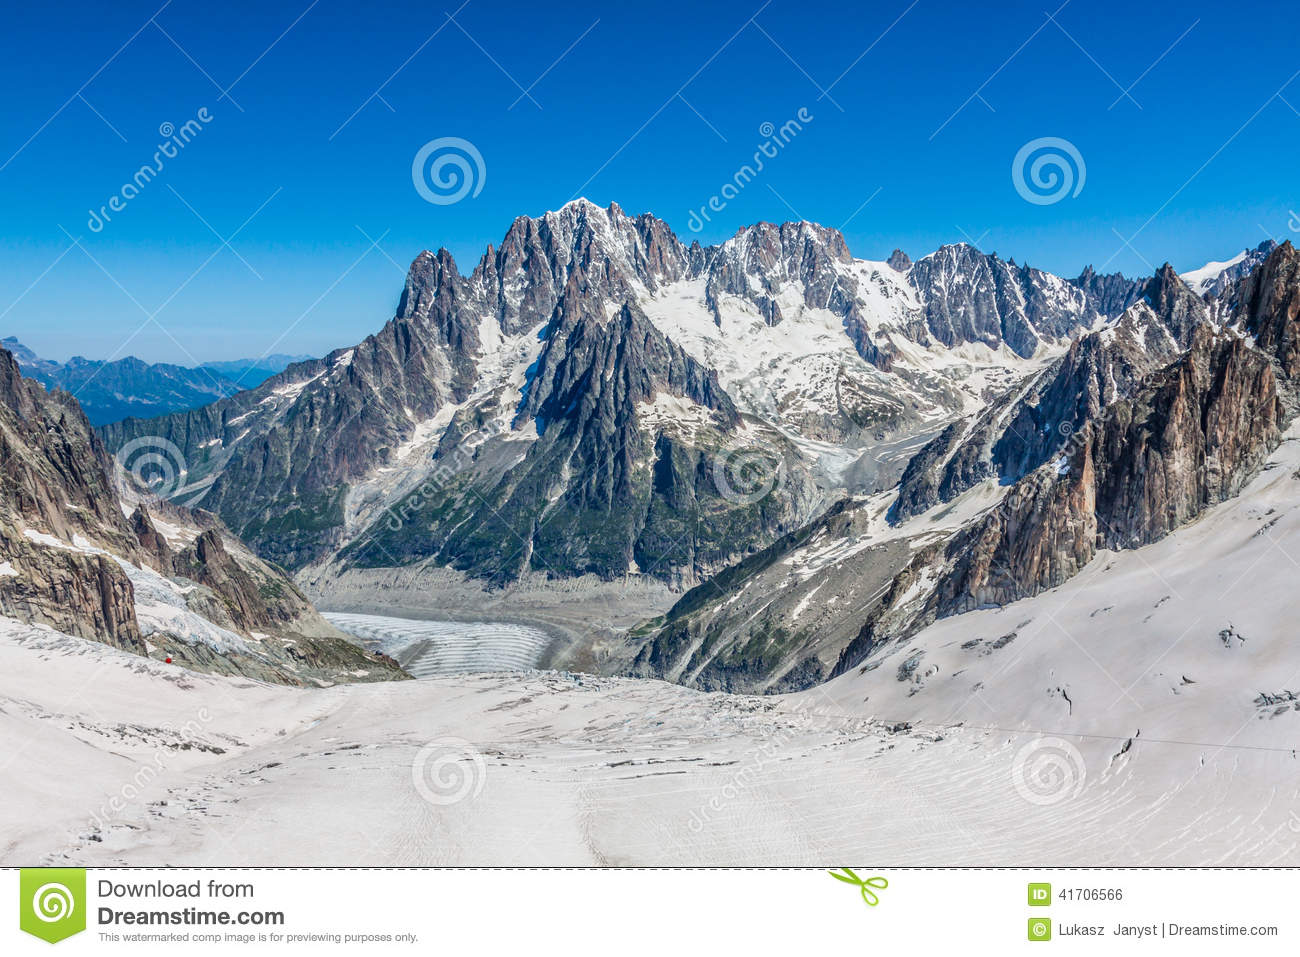 Mer De Glace (Sea Of Ice) Is A Glacier Located On The Mont Blanc.